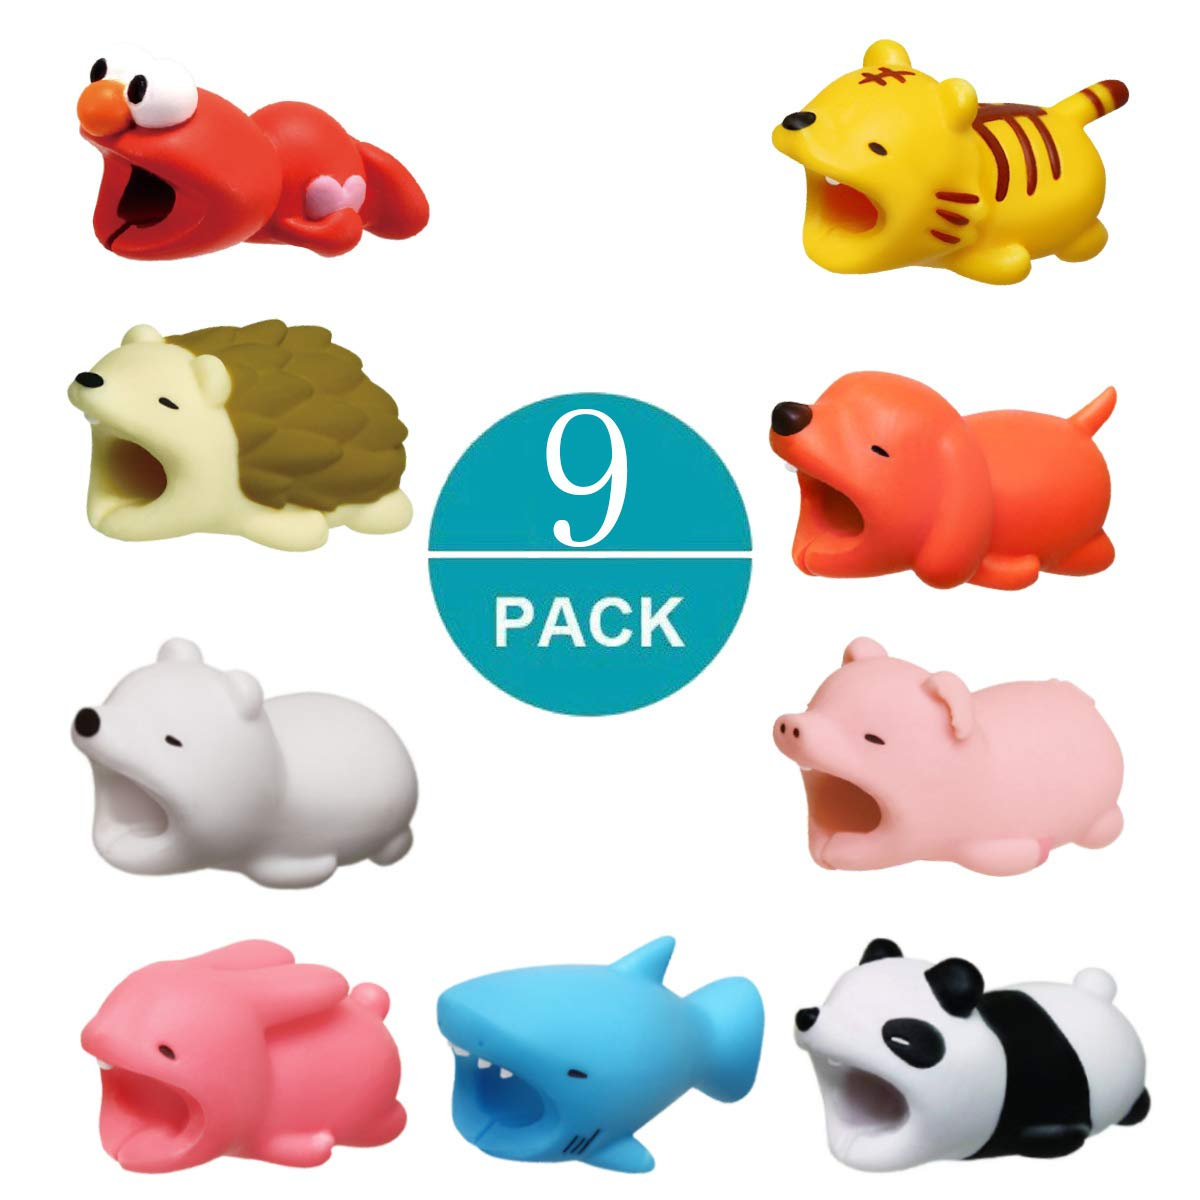 Newseego Compatible iPhone Cable Protector Charger Saver Cable Chewers Cable Cute Animal Bite Cable Accessory-5 Pack